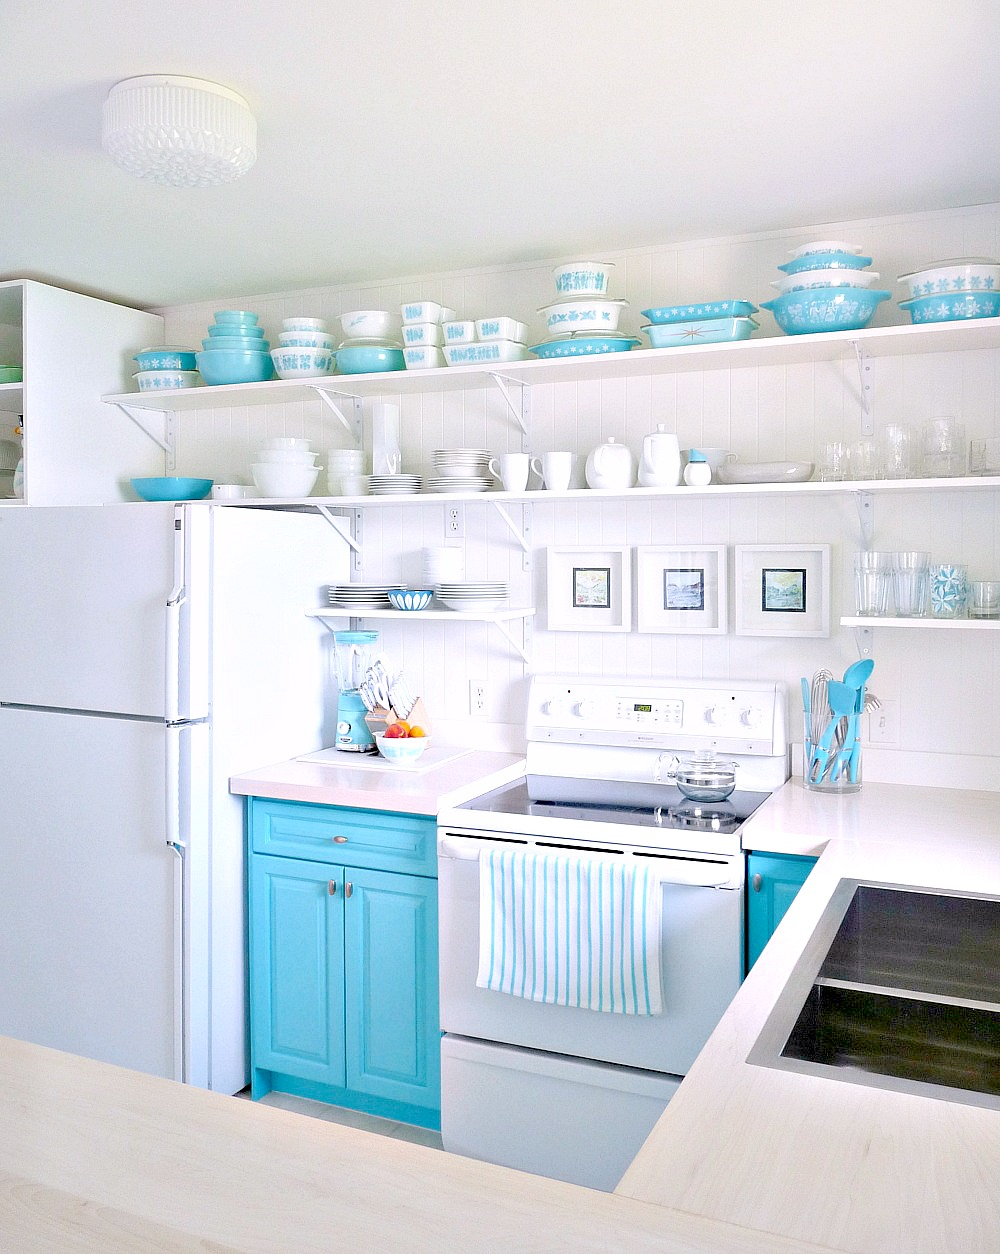 A Budget-Friendly Turquoise Kitchen Makeover | Dans le Lakehouse on small kitchen countertop decorating ideas, vintage small kitchen ideas, ikea kitchen ideas, model kitchen ideas, extremely small kitchen ideas, two tone kitchen cabinet color ideas, 2014 kitchen ideas, fun kitchen ideas, lowe's kitchen ideas, eat in kitchen ideas, cool kitchen ideas, top new kitchen ideas, kitchen design ideas, french kitchen ideas, great kitchen ideas, kitchen wall ideas, beige kitchen ideas, 1940s kitchen ideas, do it yourself kitchen ideas, very small kitchen ideas,